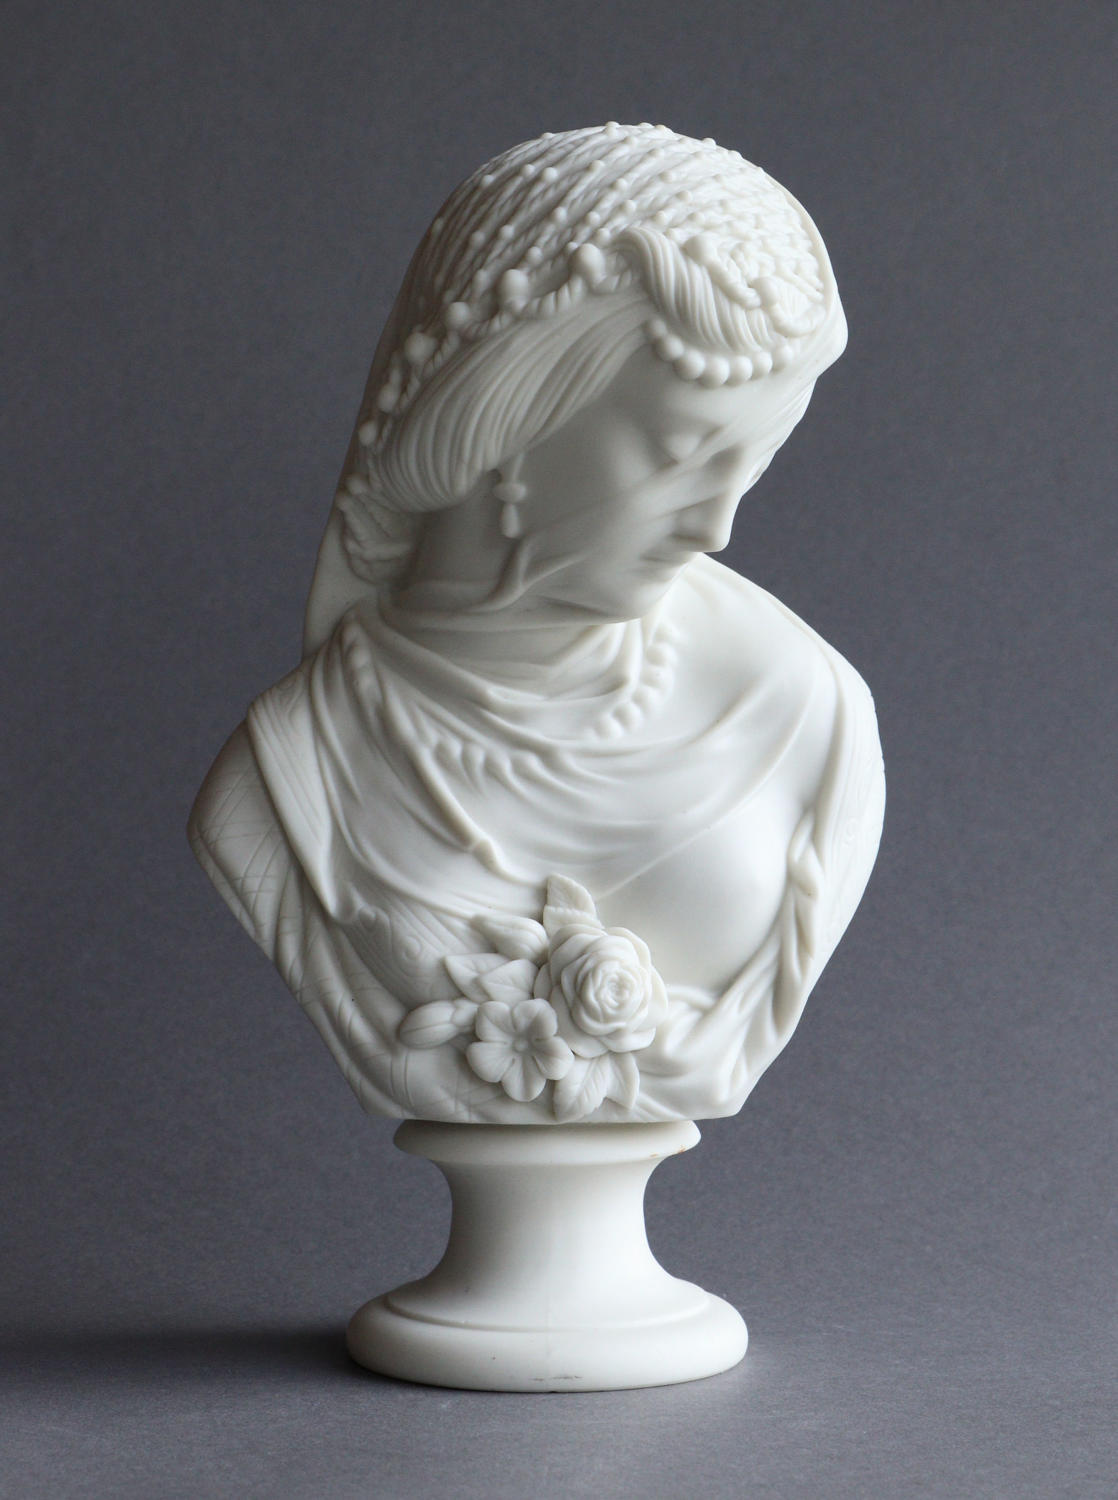 A Parian bust of a veiled woman by Robinson & Leadbeater